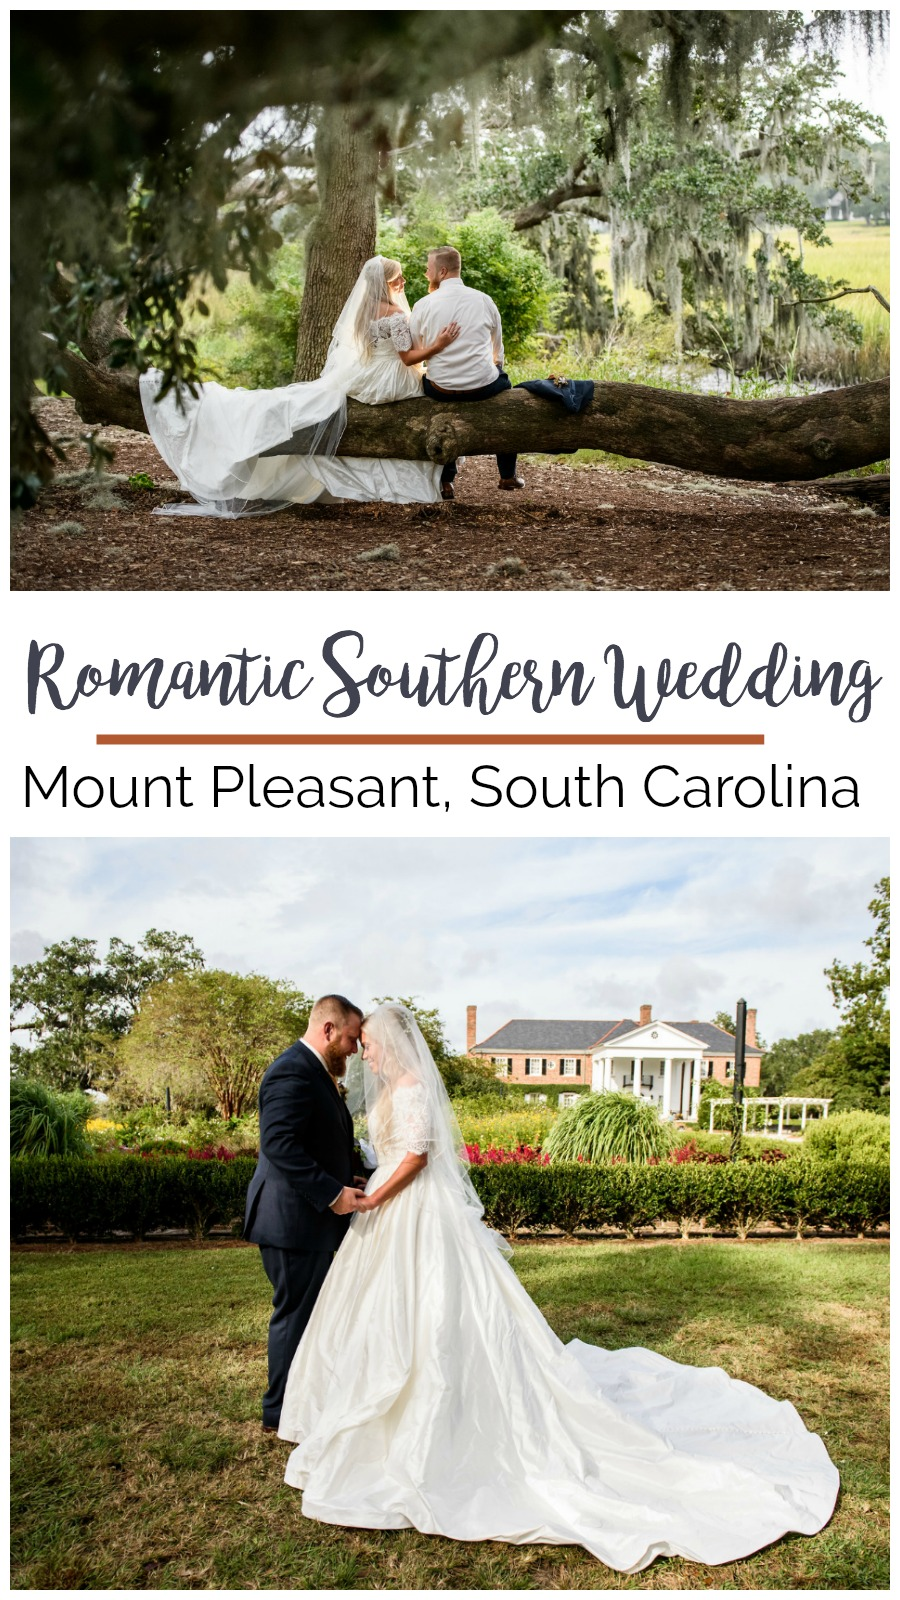 Jillian and Bill: Dreamy Boone Hall Plantation Wedding, Mount Pleasant, South Carolina | Palmetto State Weddings | f8 photo studio | southern wedding inspiration | Charleston wedding venues